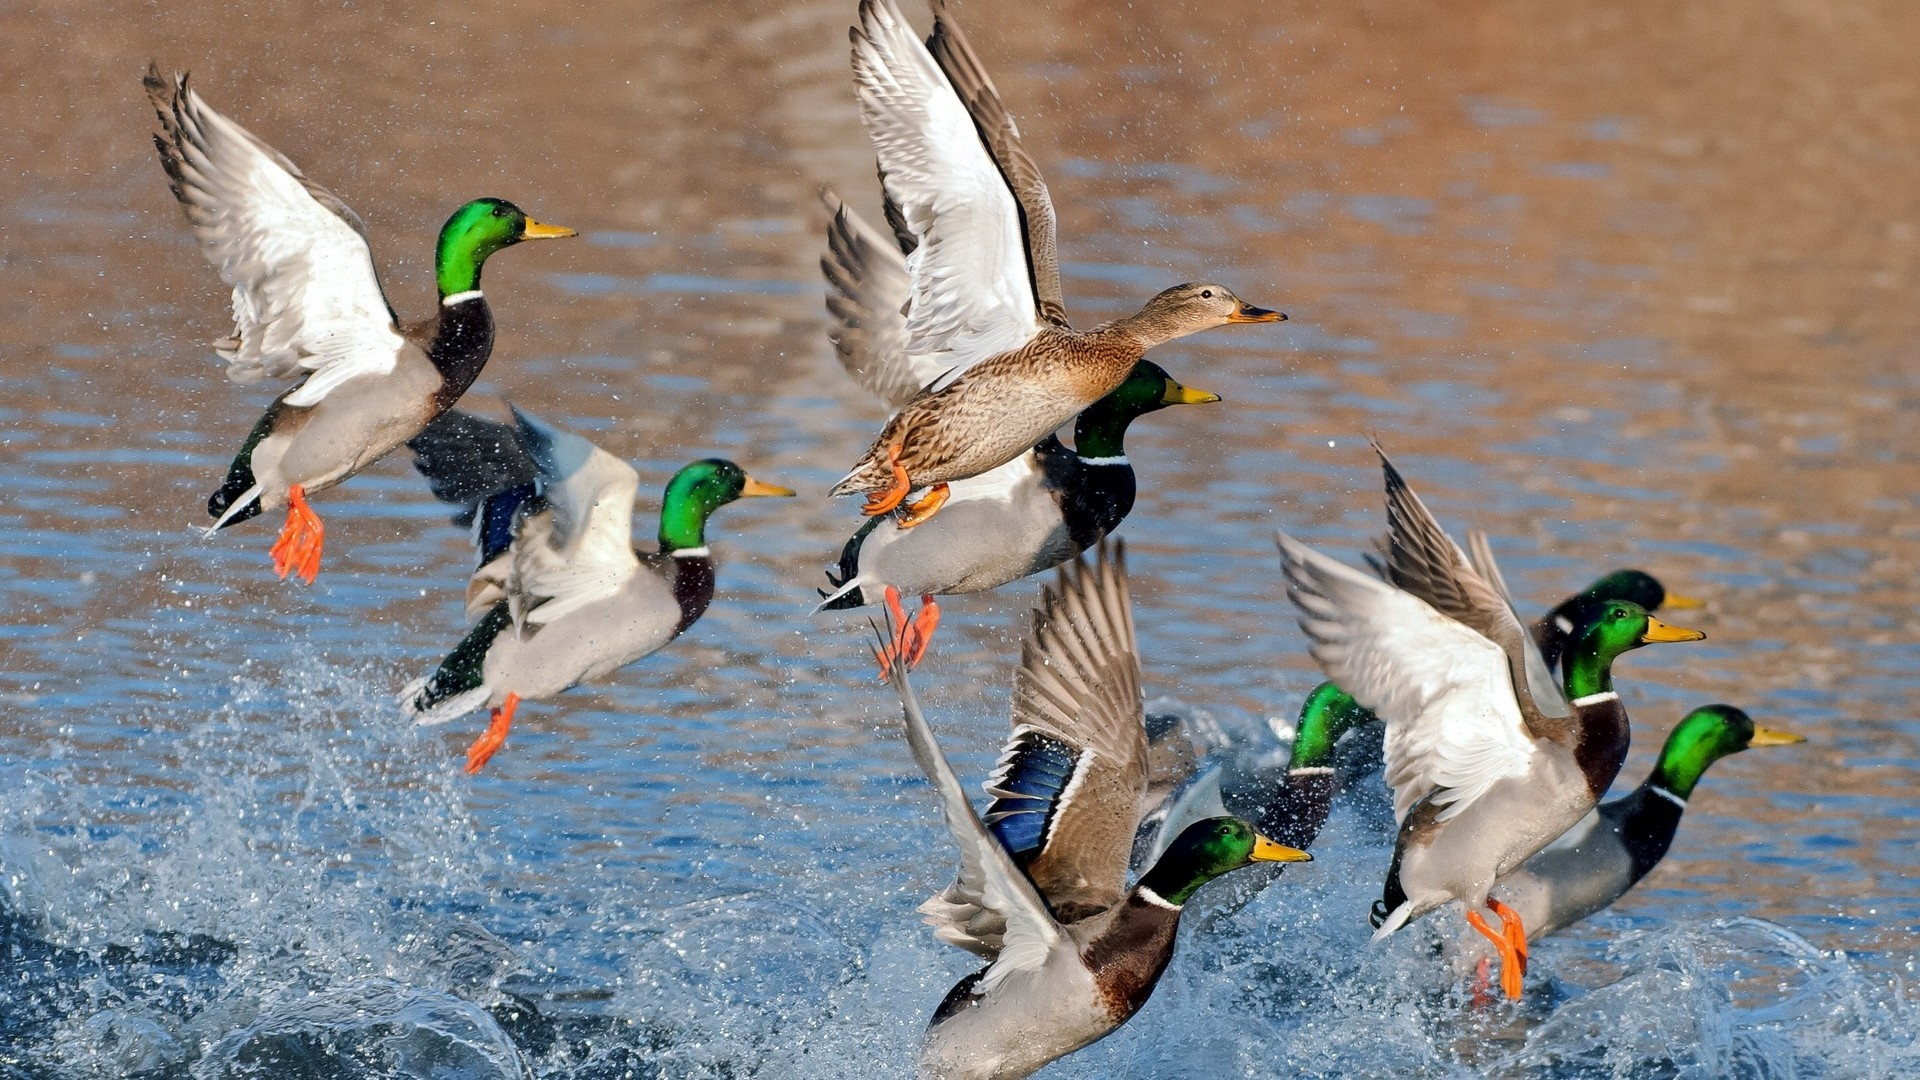 Ducks Flying Over Water 1920 x 1080 Download Close 1920x1080